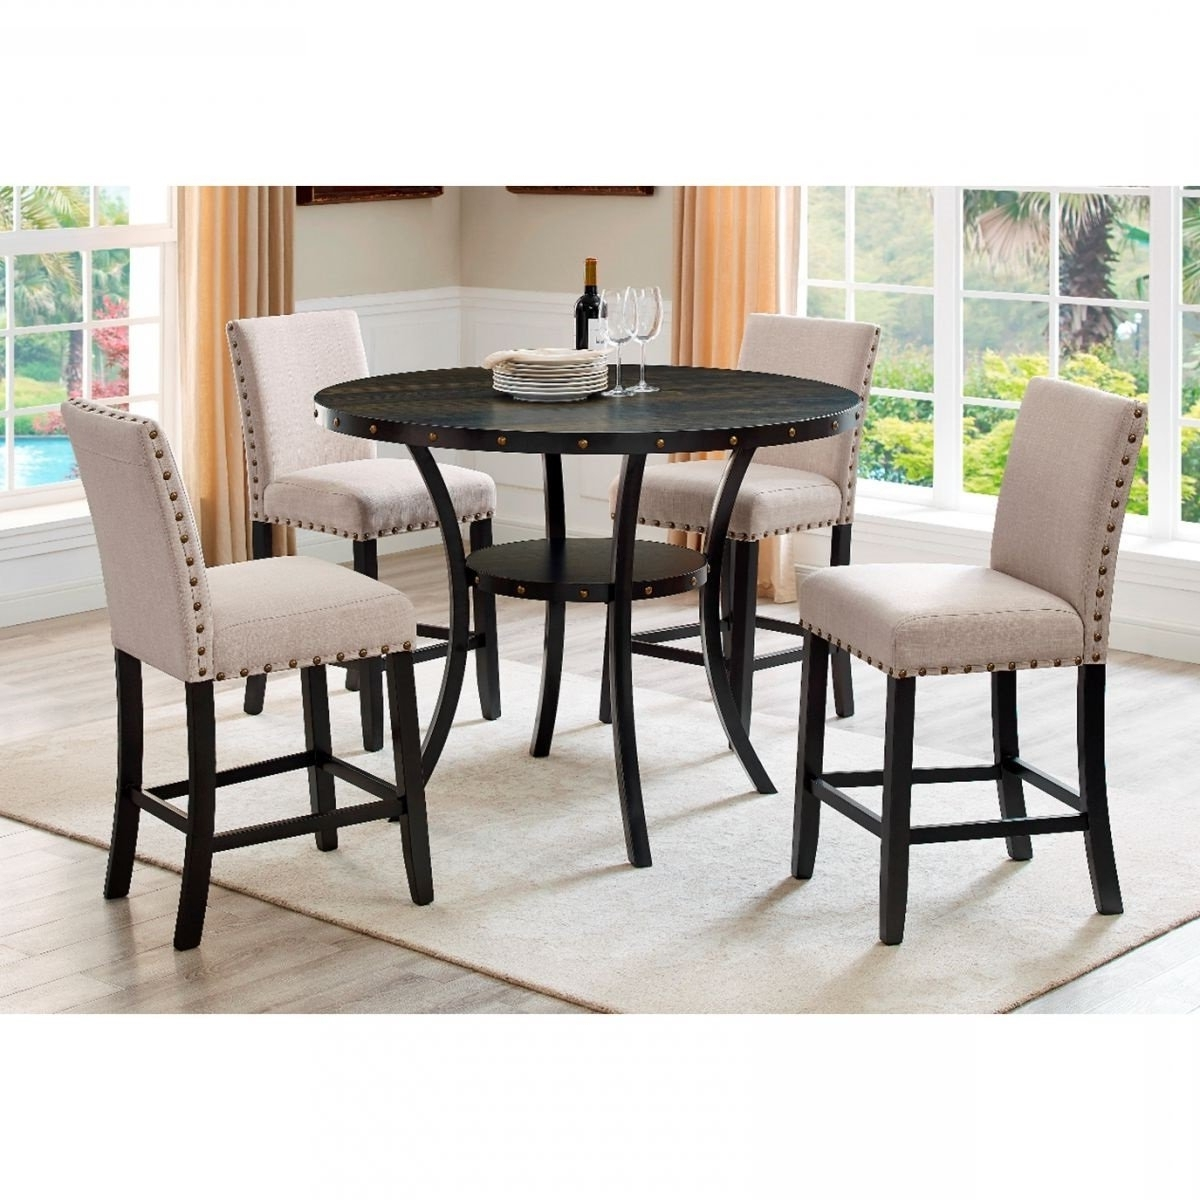 Preferred Madison 5 Pc Counter Height Dining Room (View 13 of 25)